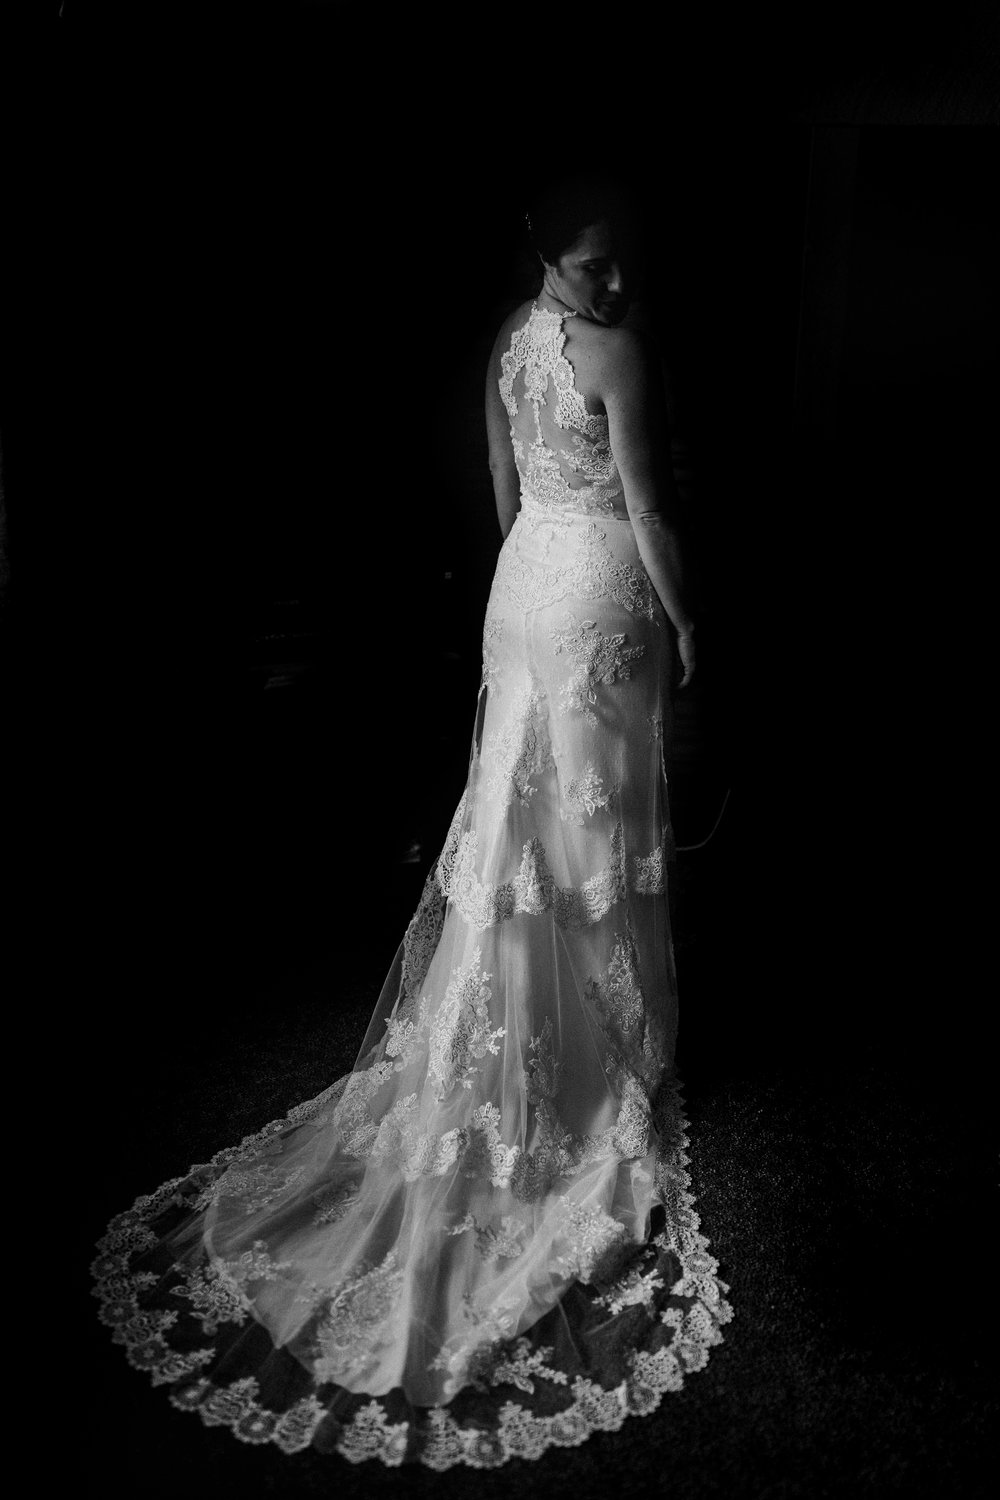 Black and white bridal portrait of bride wearing gown at fairmont hot springs wedding